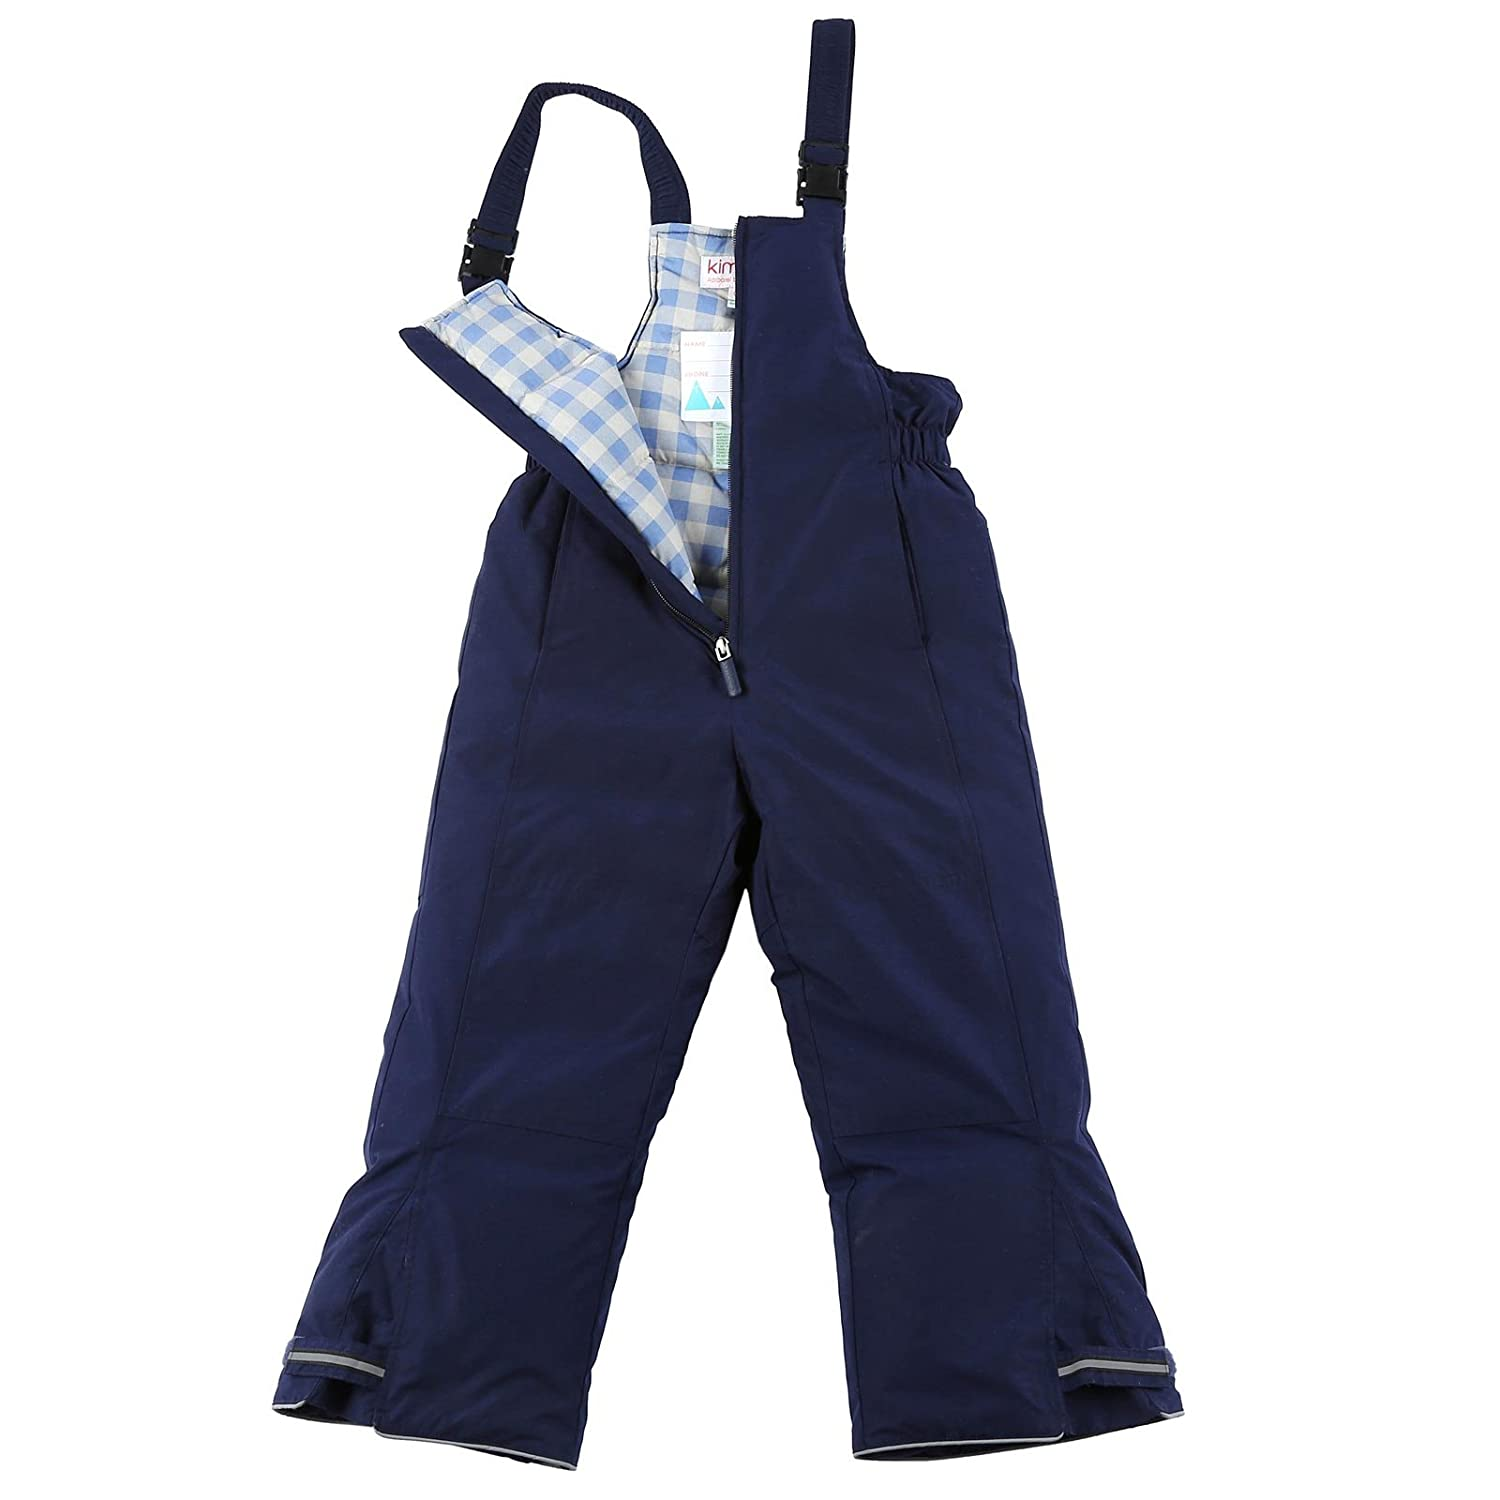 Momo Baby OUTERWEAR ボーイズ